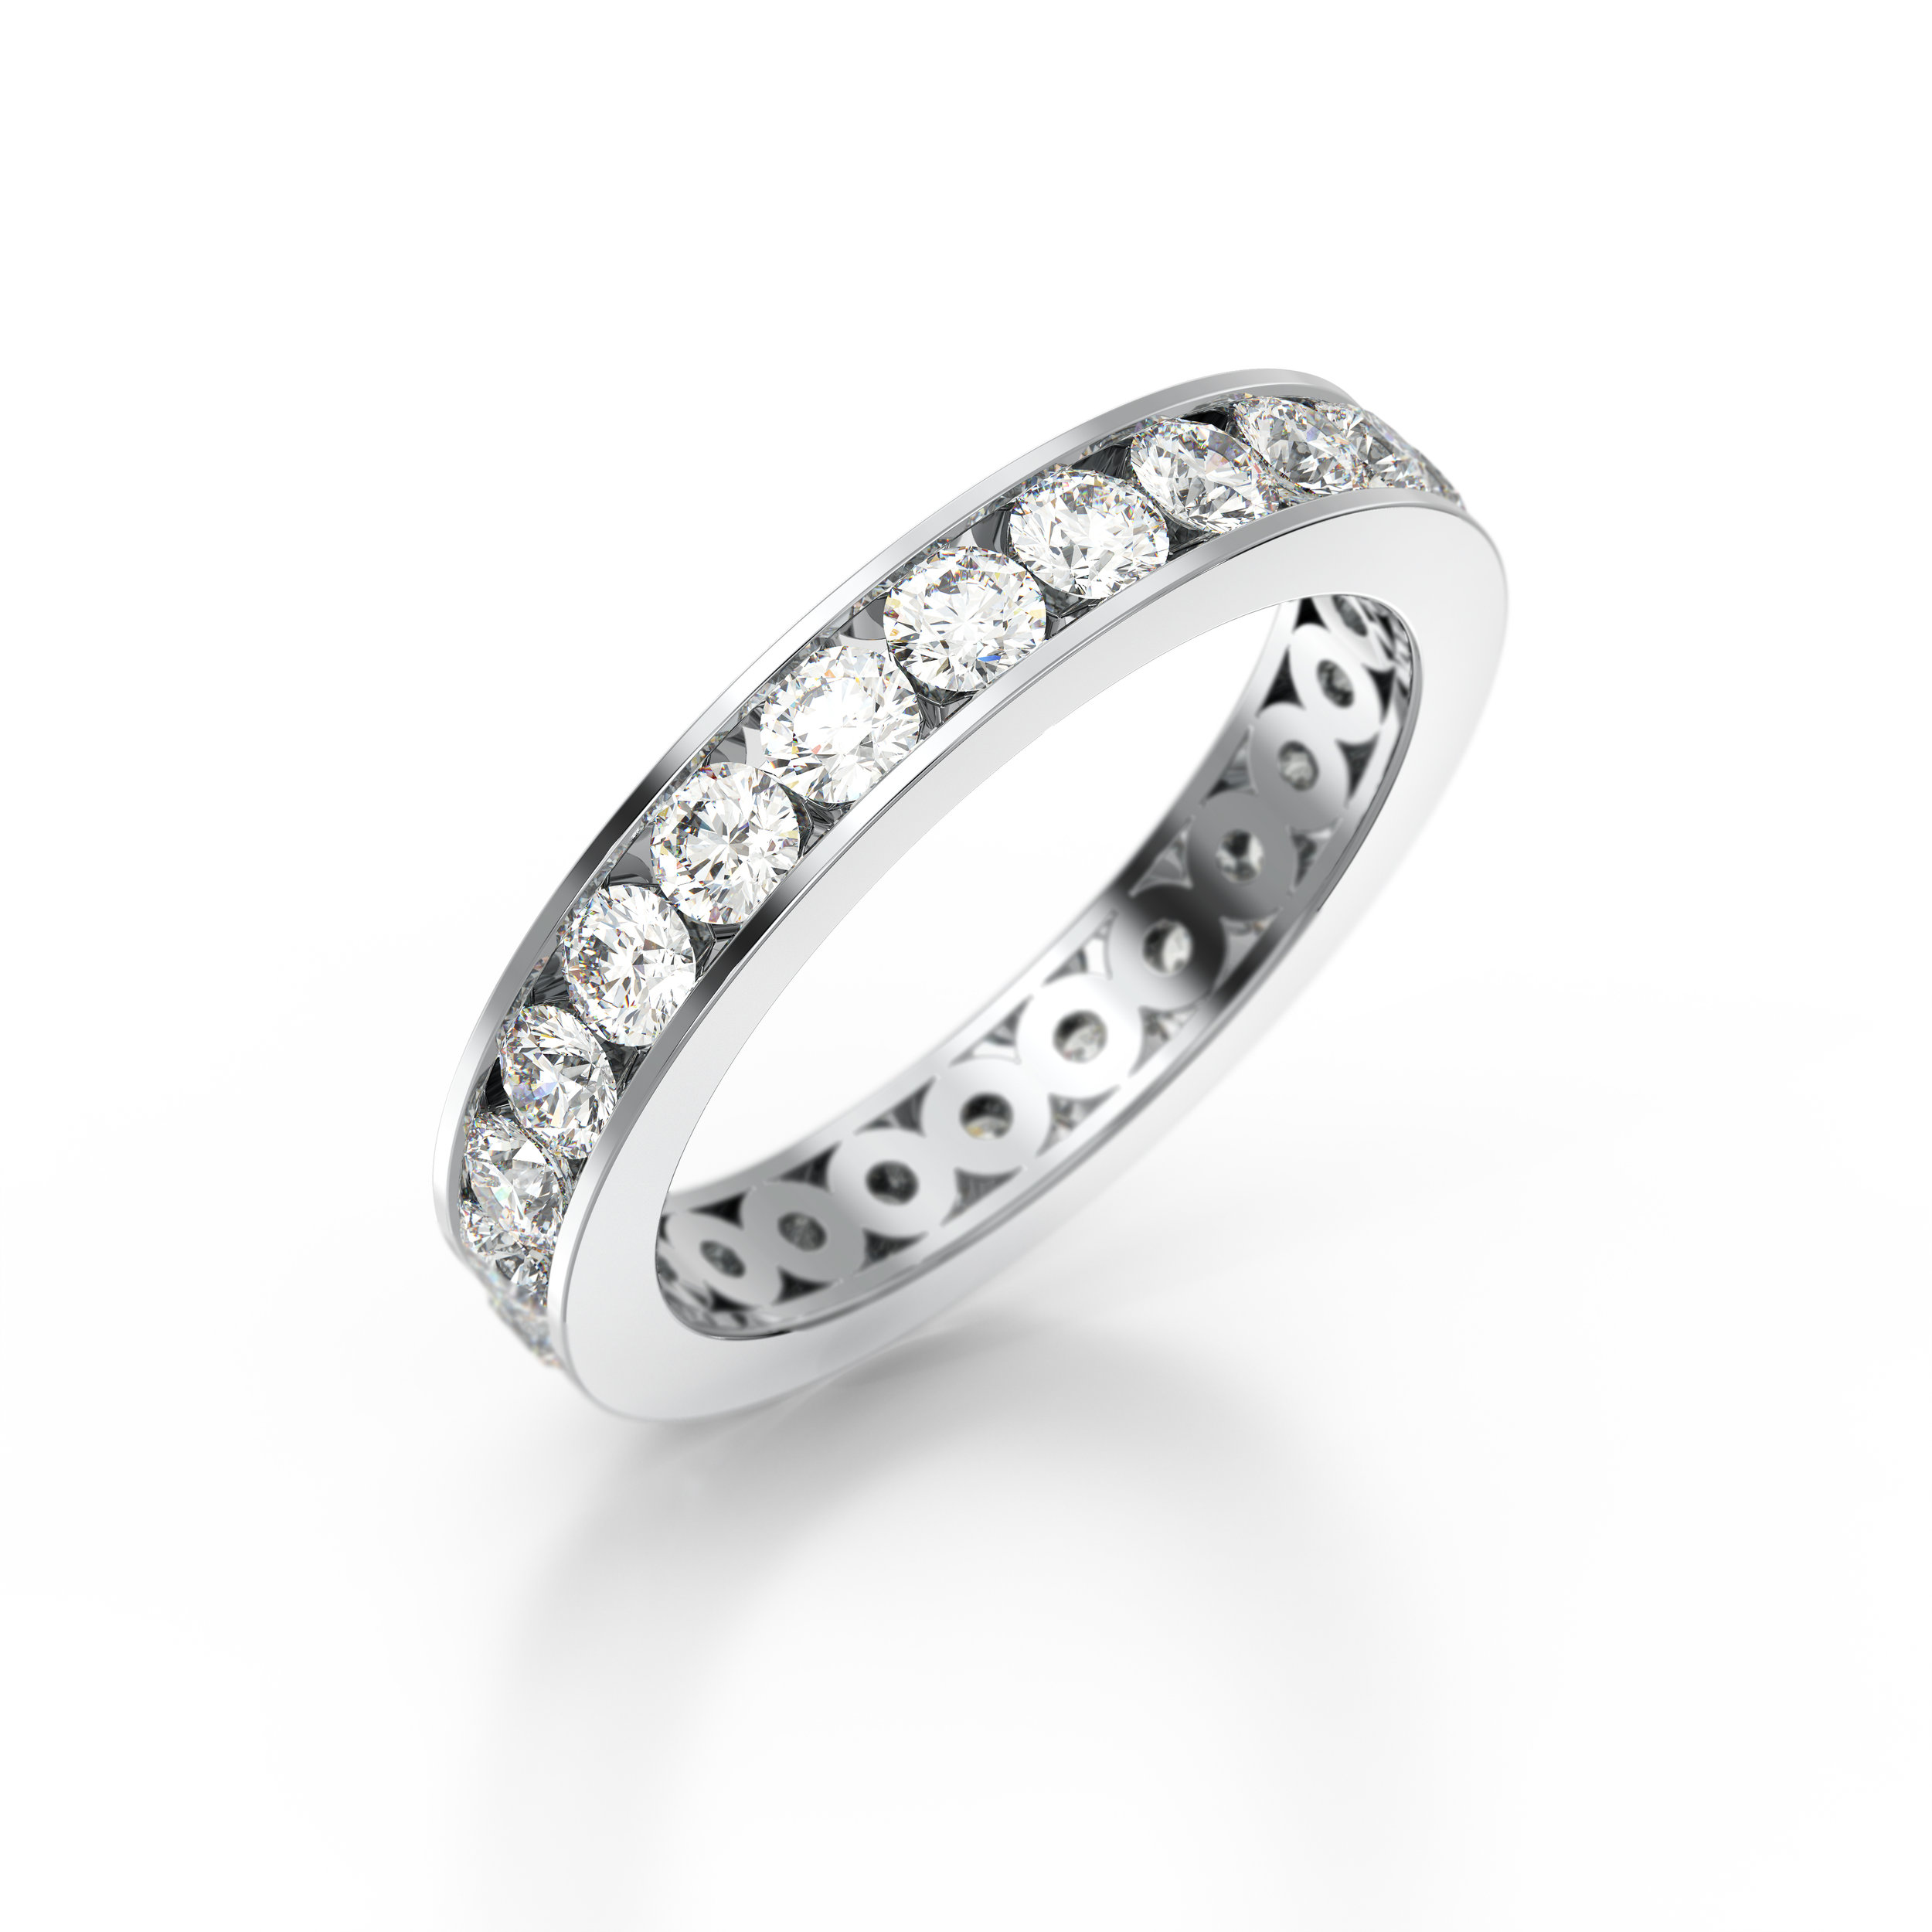 Brilliant Cut Channel Set Eternity Ring | Hatton Garden